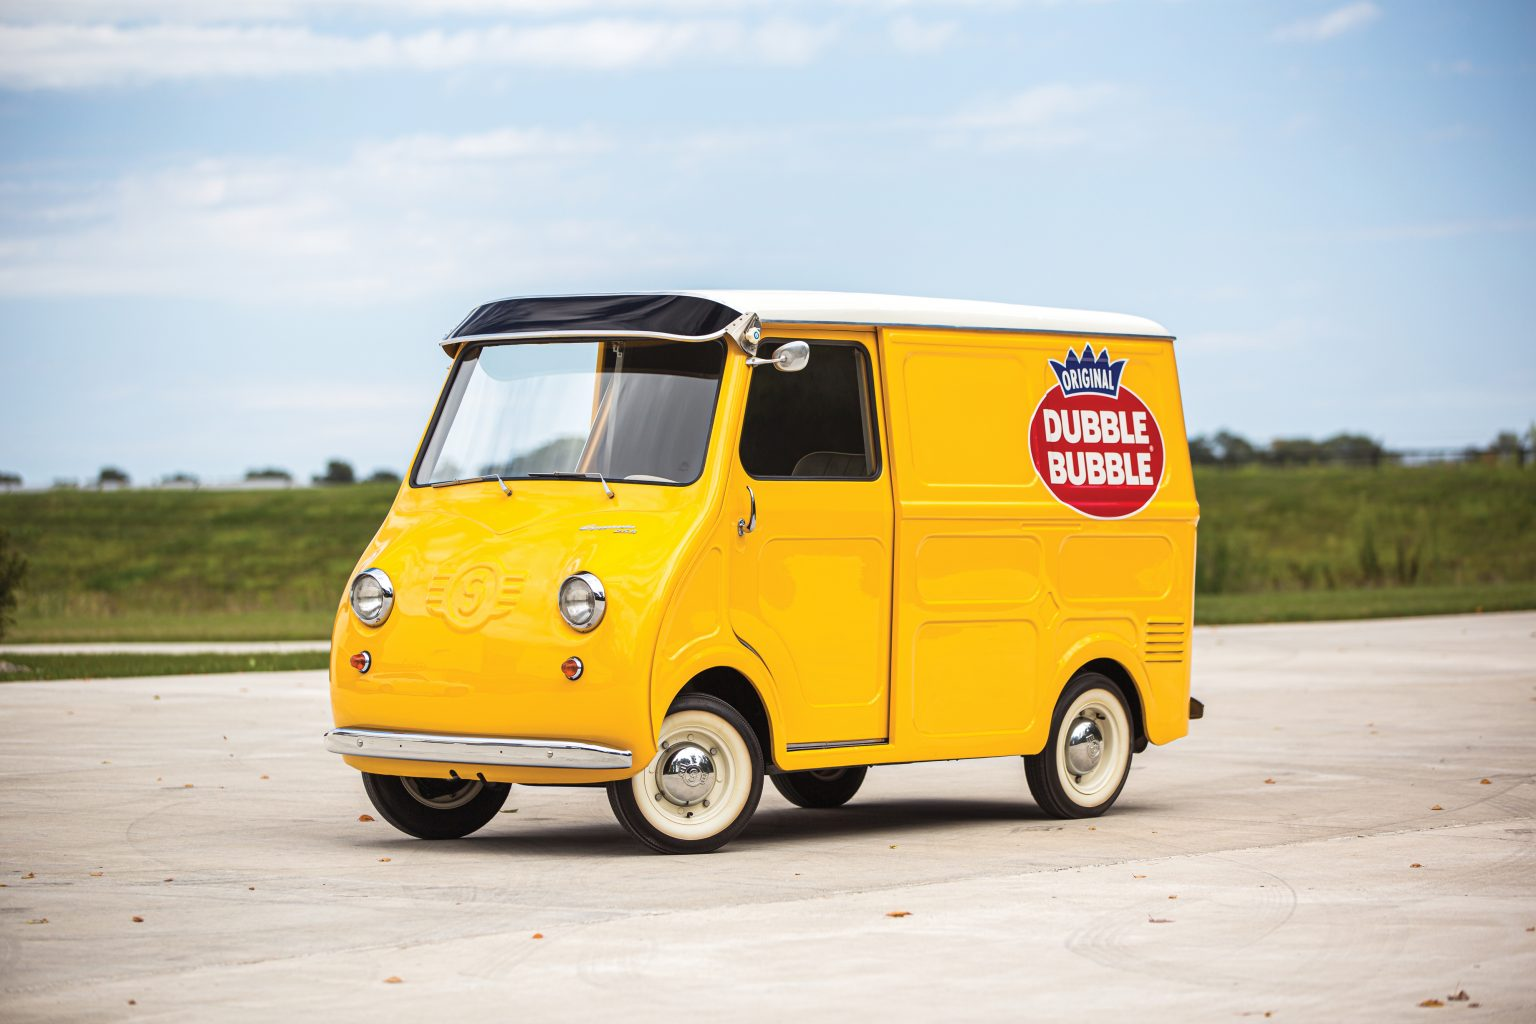 Seven quirky classic cars to brighten any garage